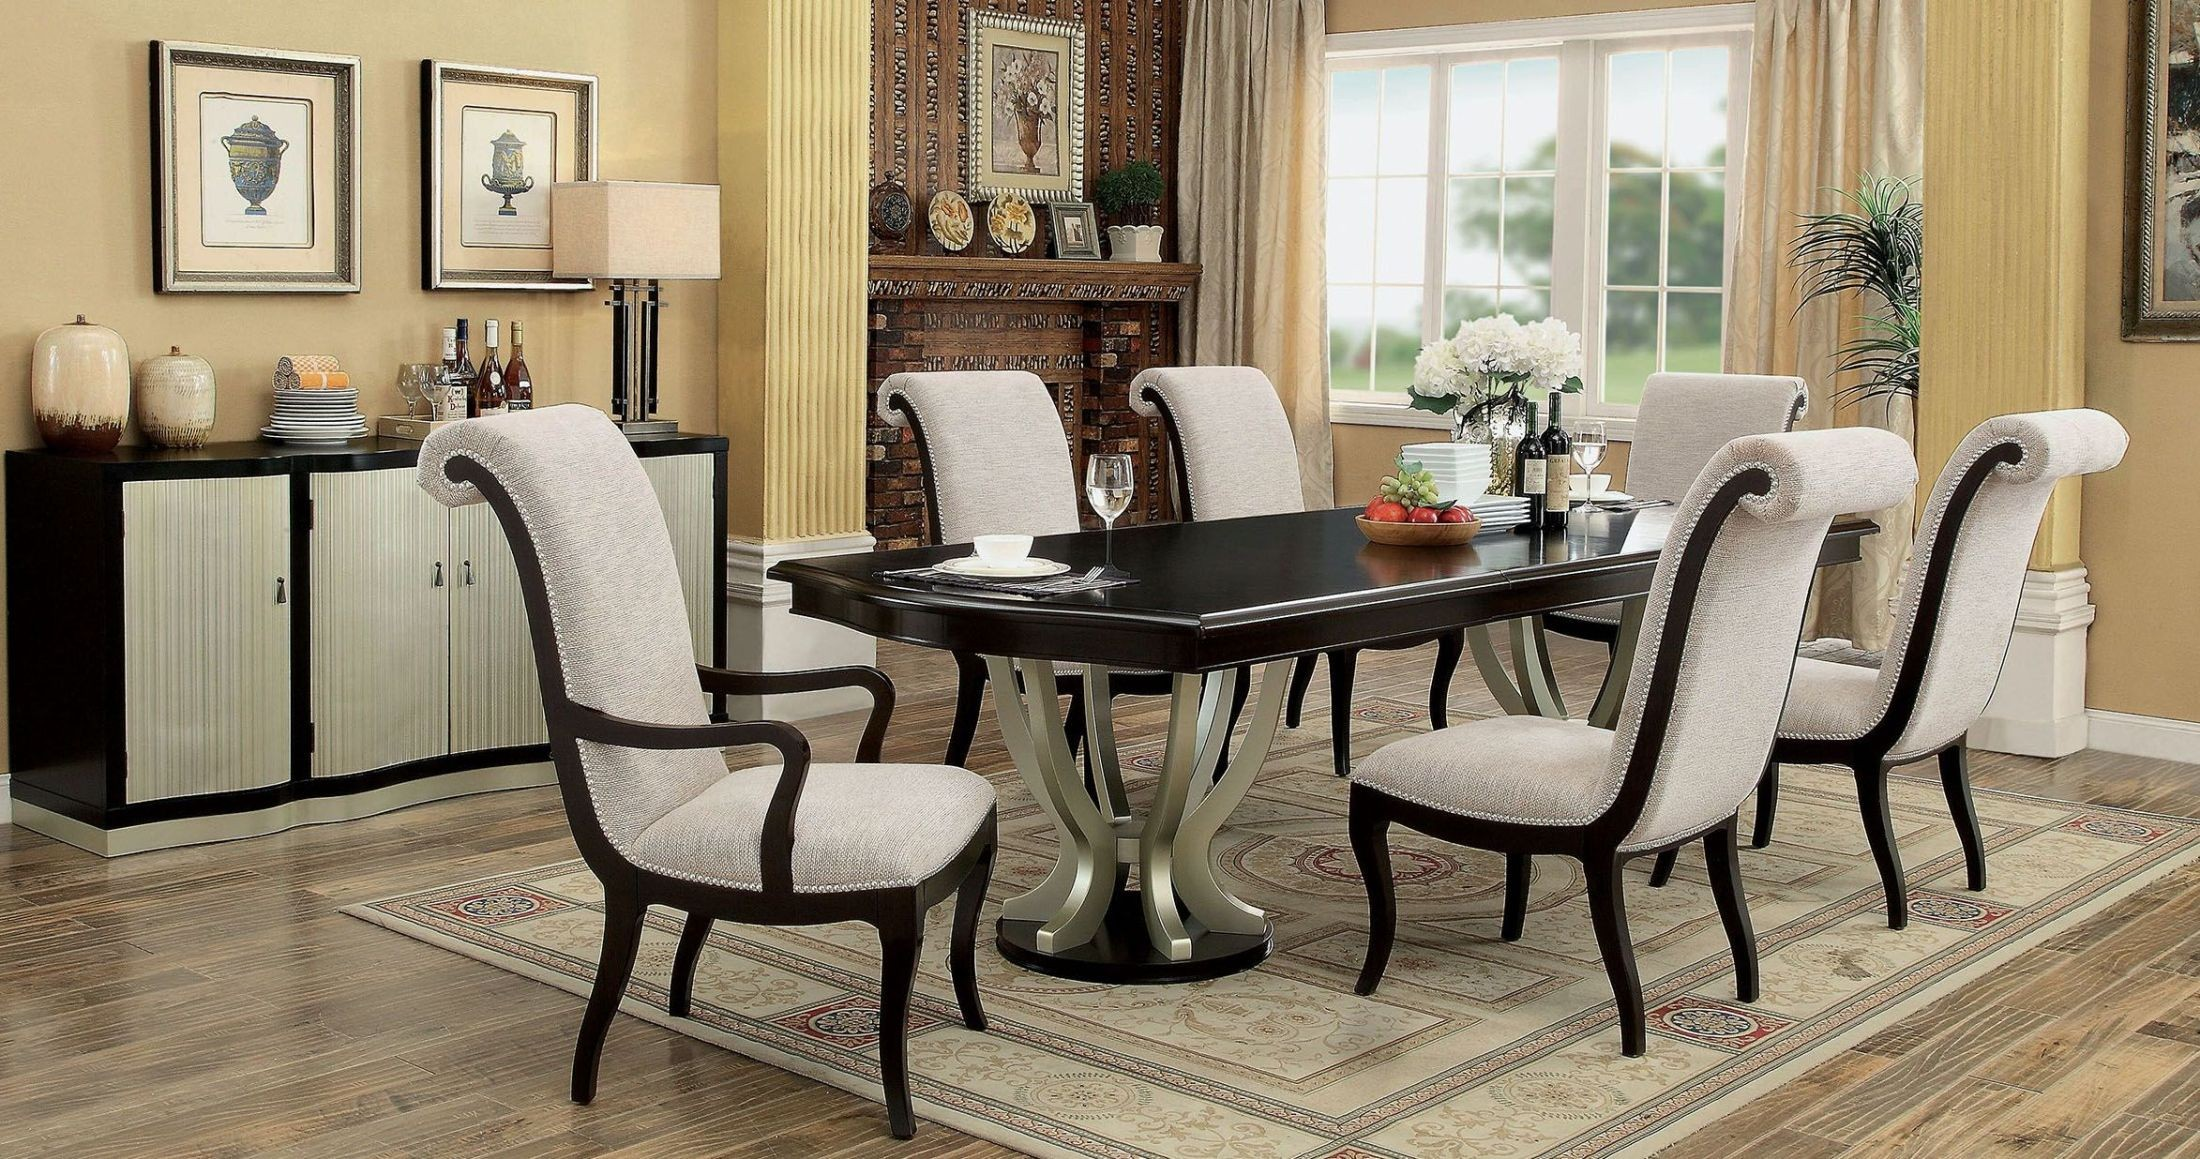 Ornette Espresso Extendable Rectangular Dining Room Set CM3353T TABLE Furni